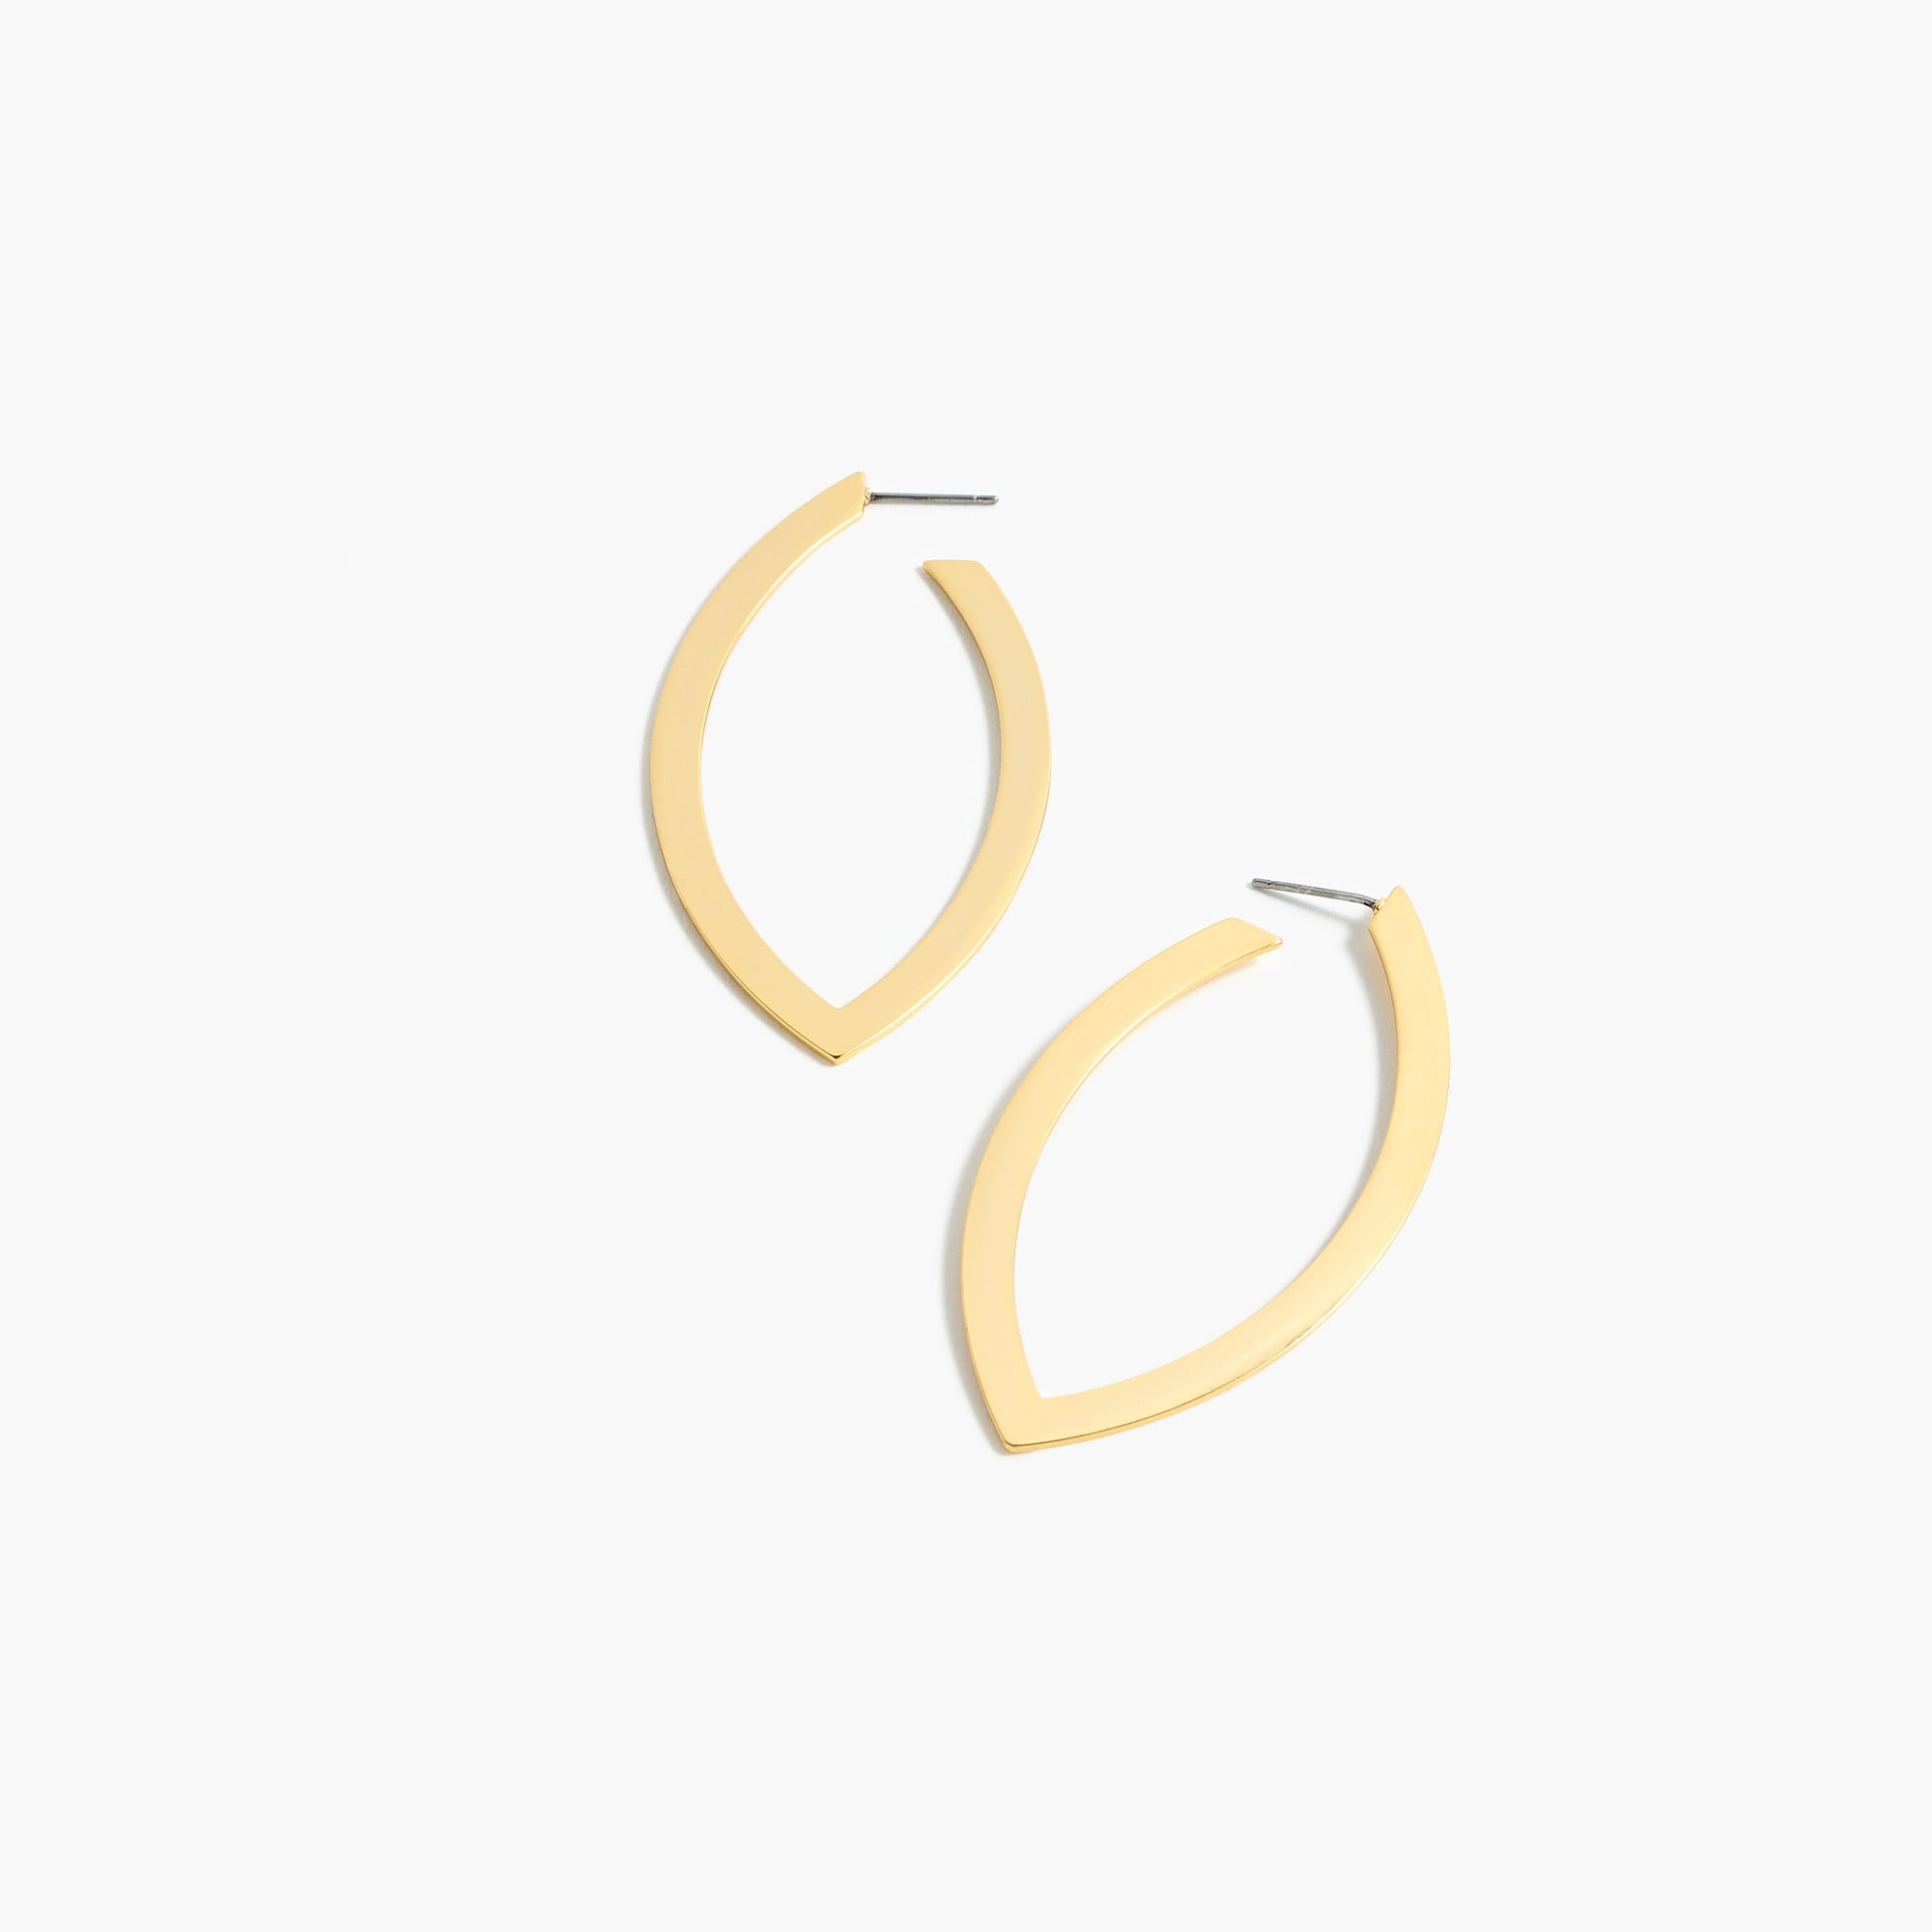 Image 1 for Leaf hoop earrings